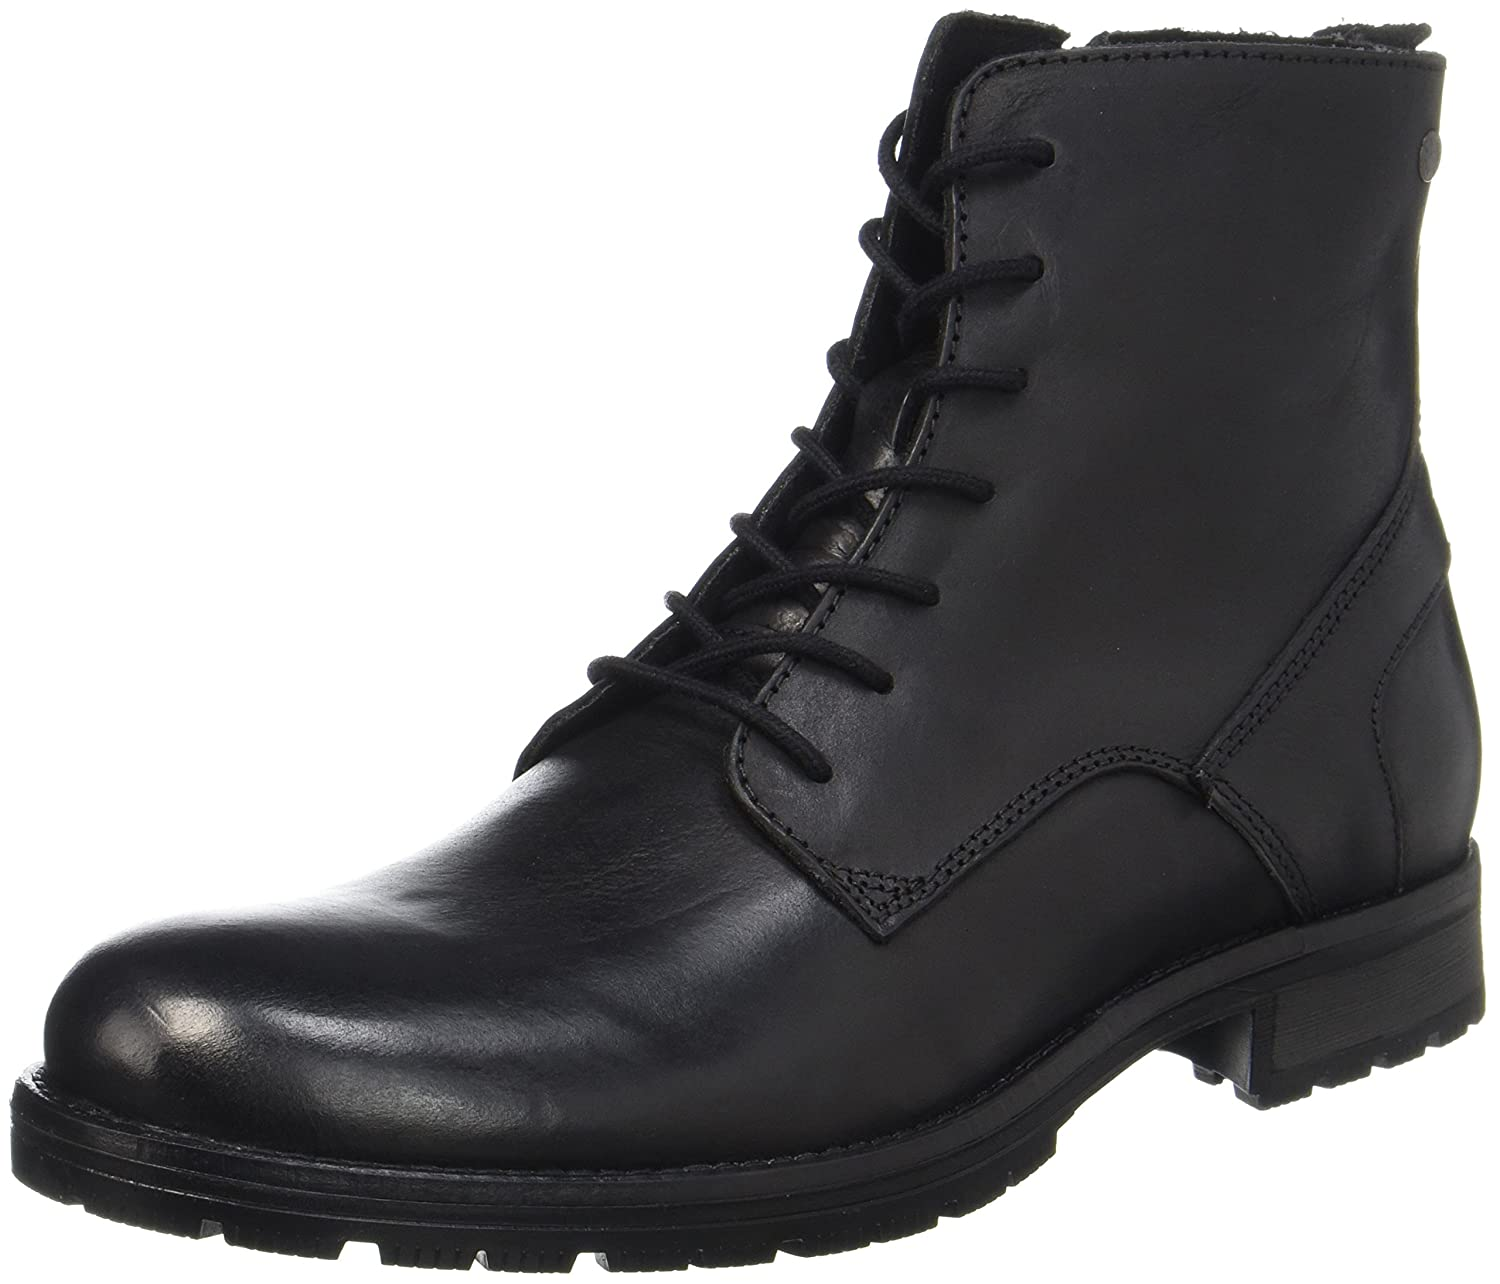 Jack & Jones Jfworca Leather Black, Botas Clasicas para Hombre